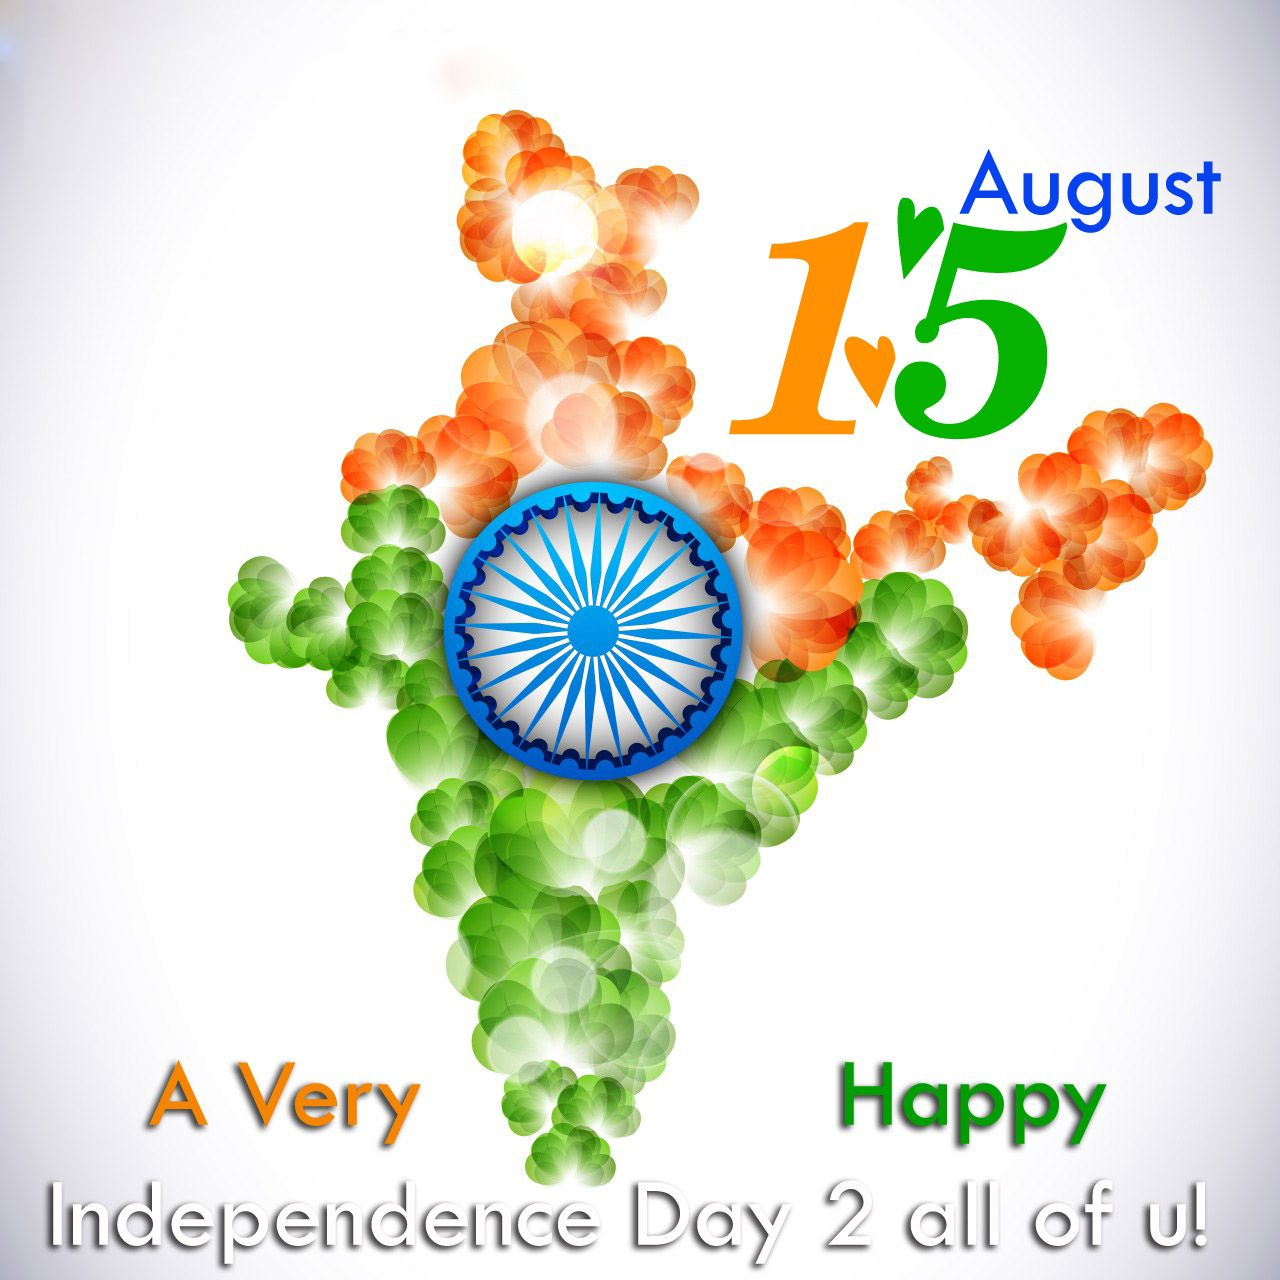 15 August Independence Day The Day Of Independence Wishes Quotes